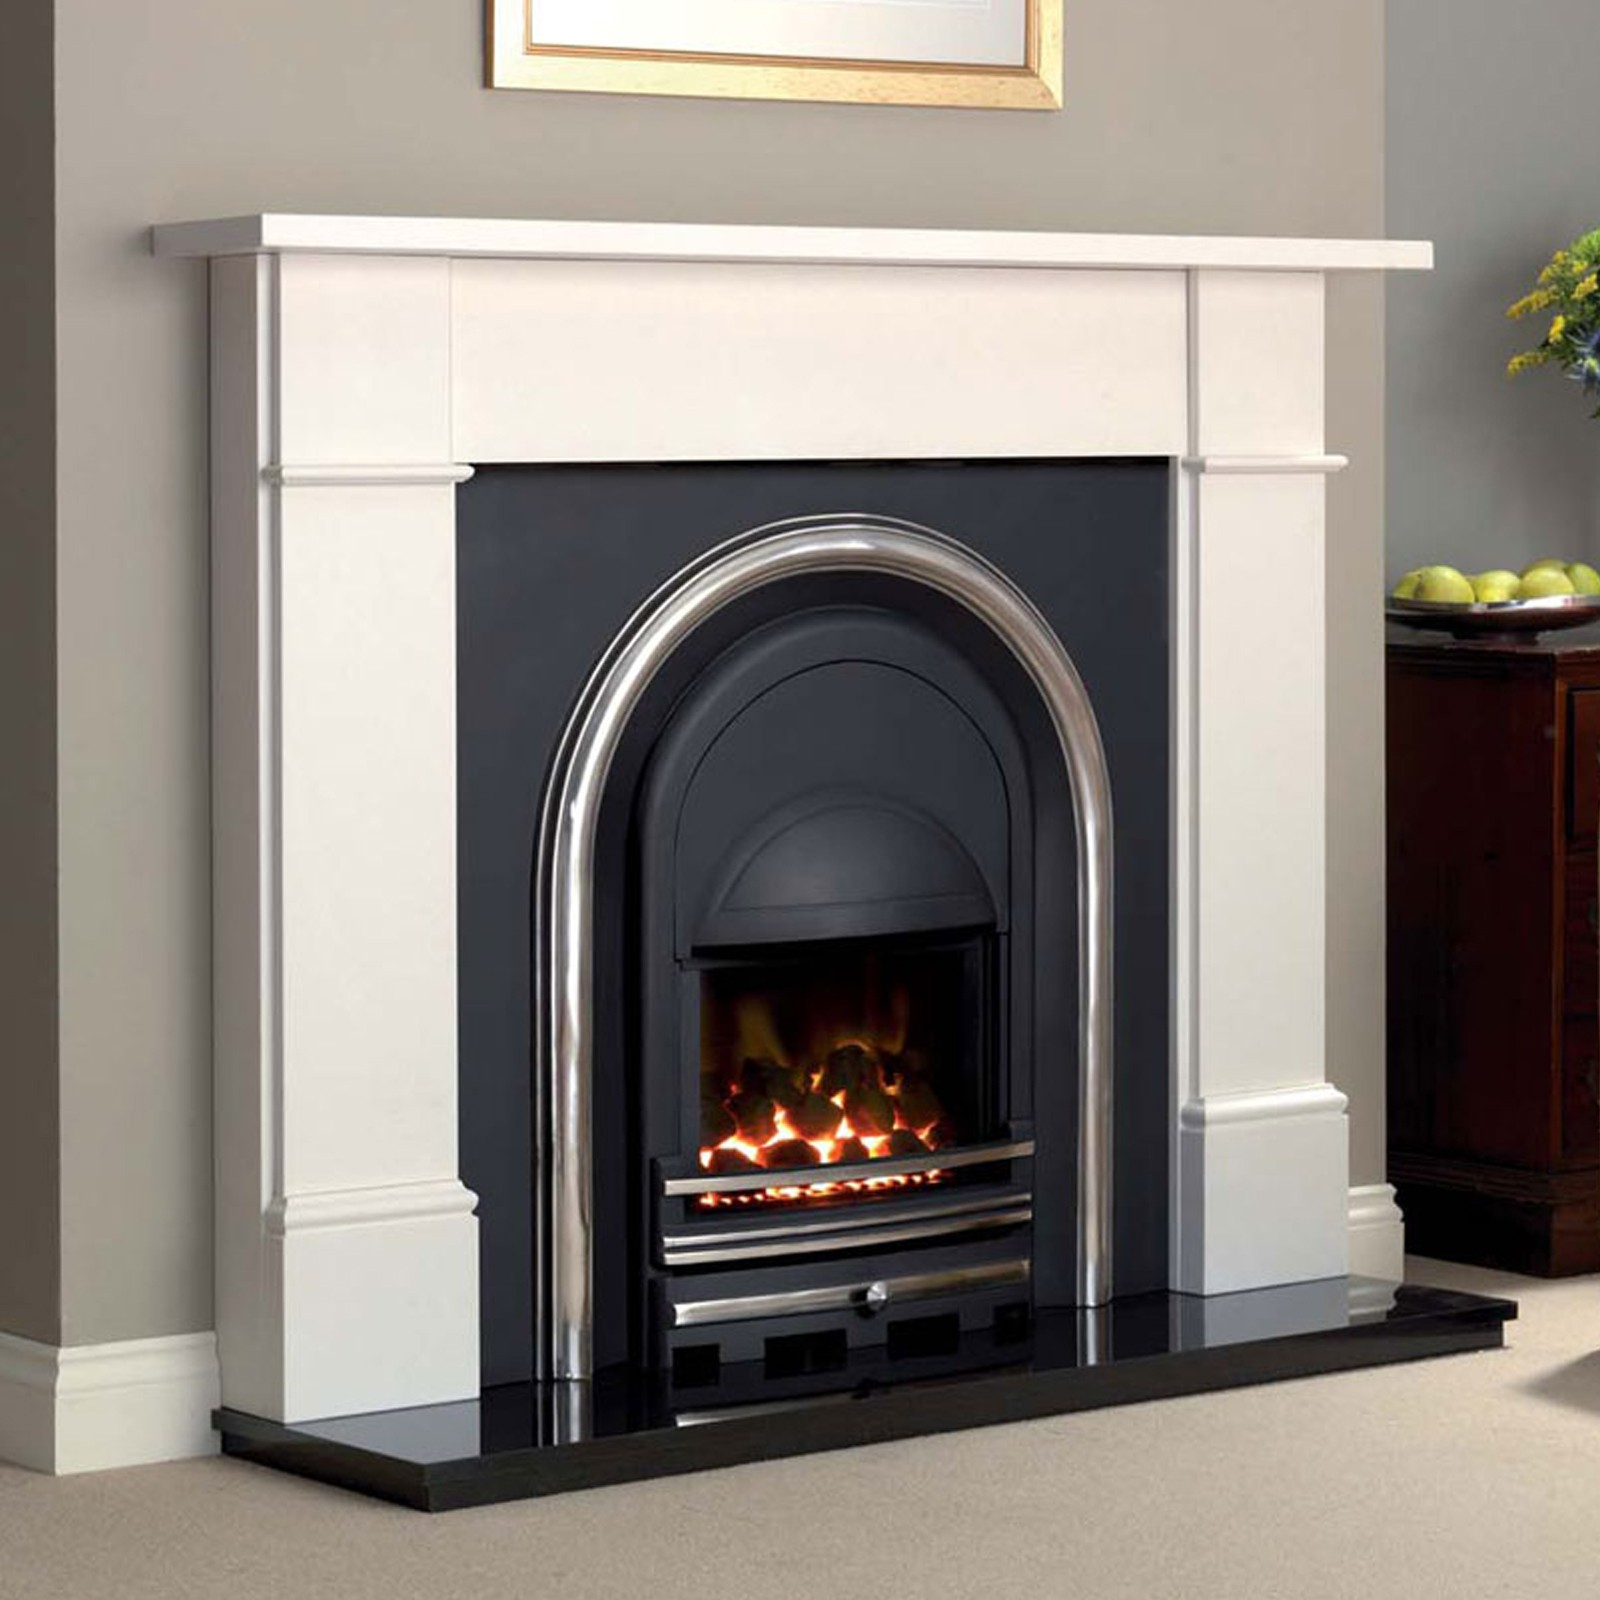 Superb Prices Deals  Cast Tec Majestic Integra Fireplace